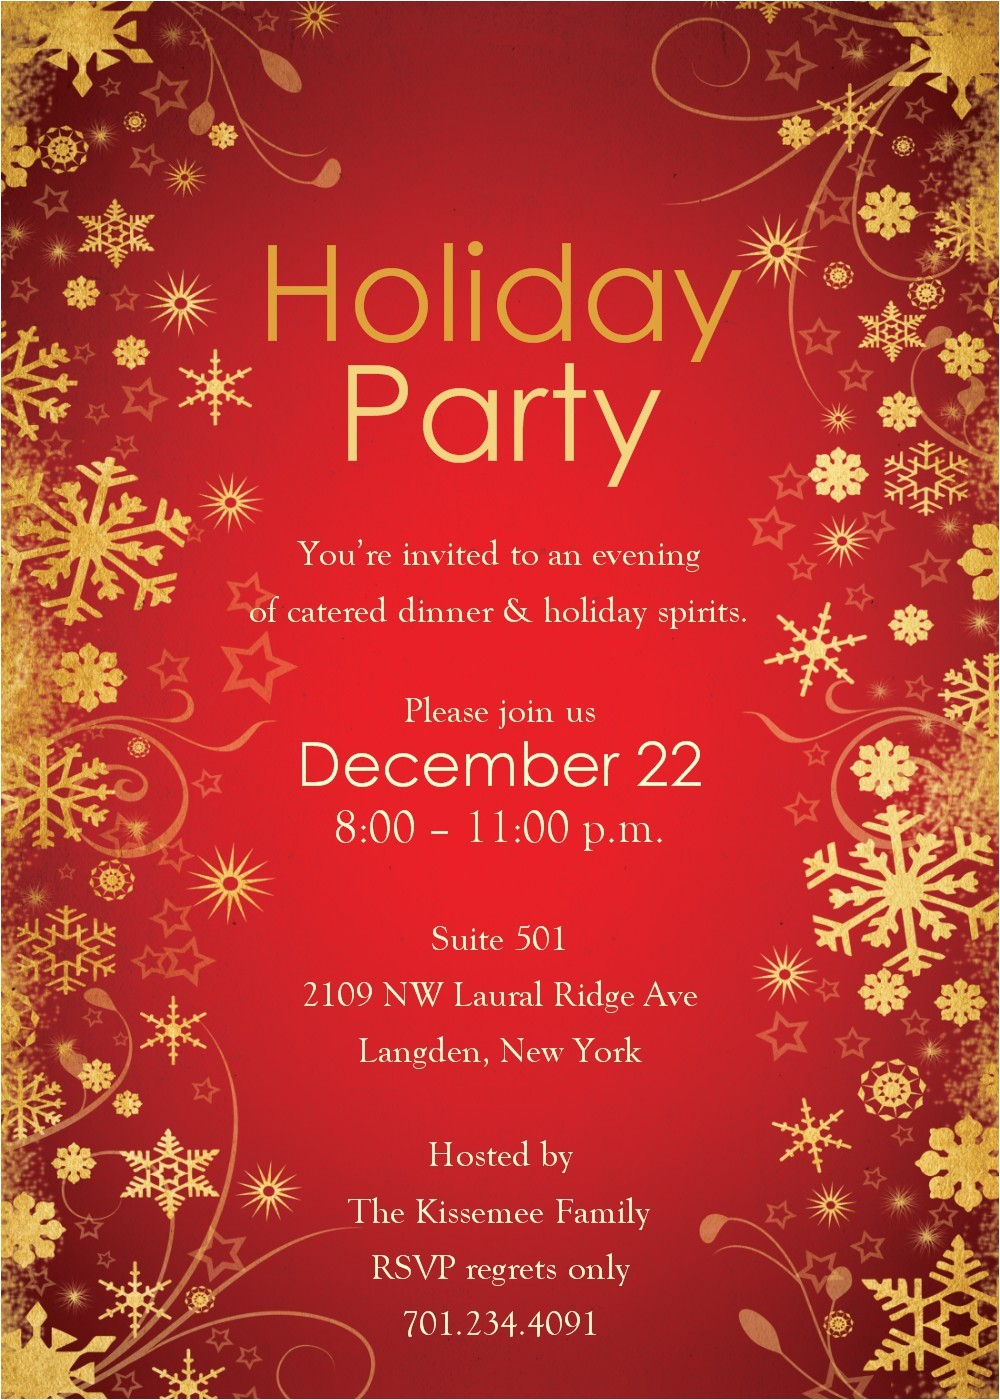 Free Holiday Party Invitation Templates Word Free Holiday Party Invitation Templates